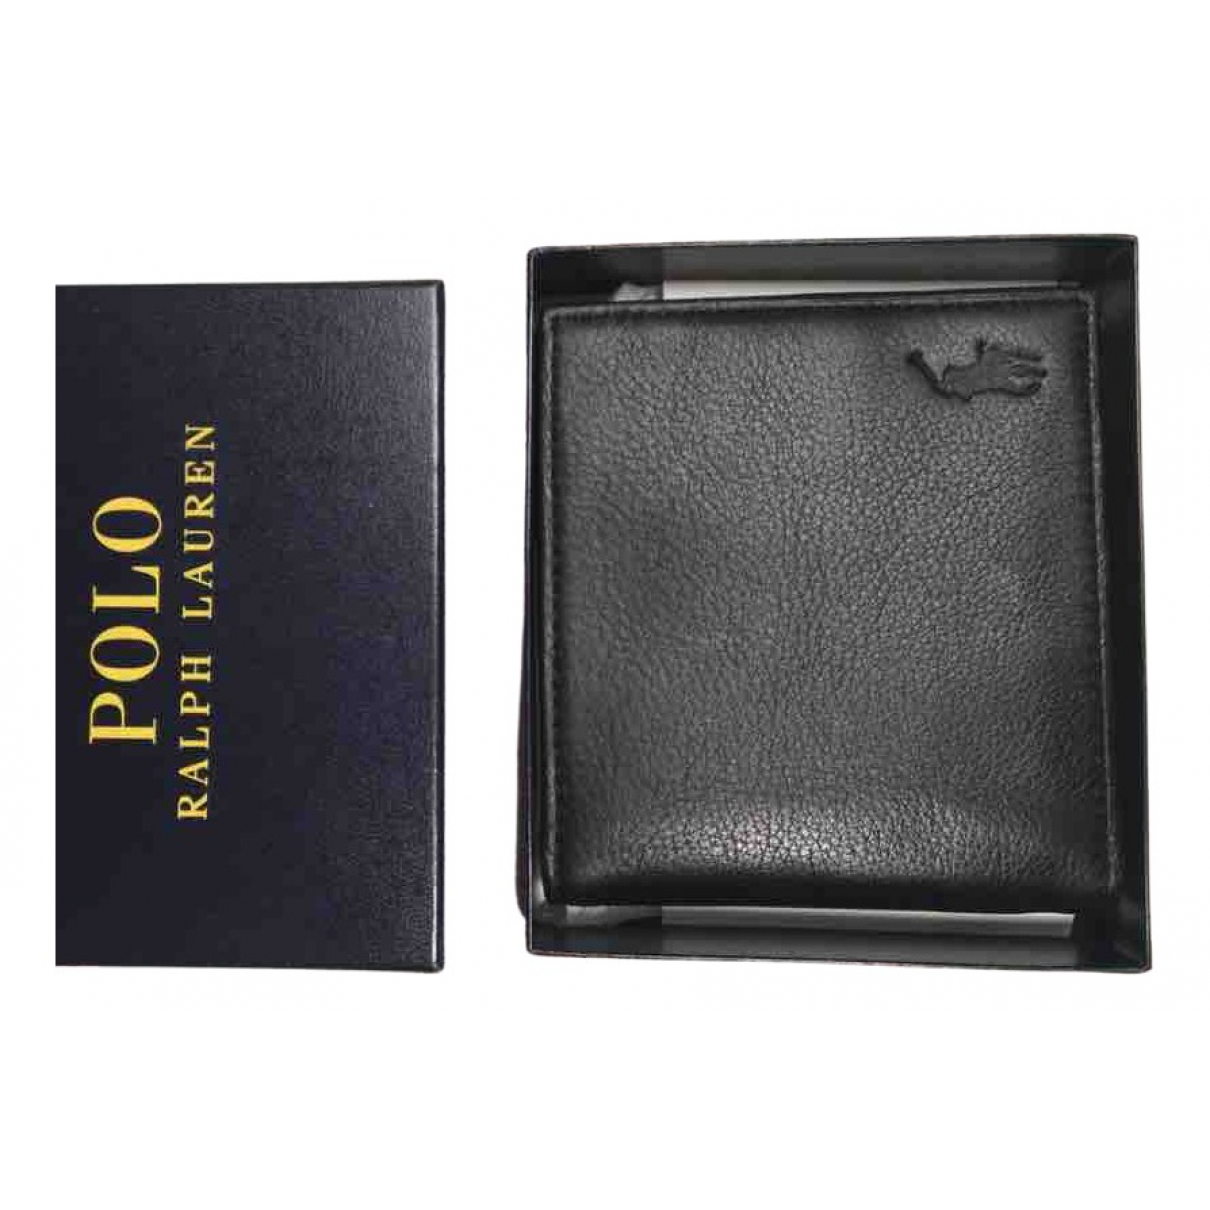 Polo Ralph Lauren N Black Leather Small bag, wallet & cases for Men N